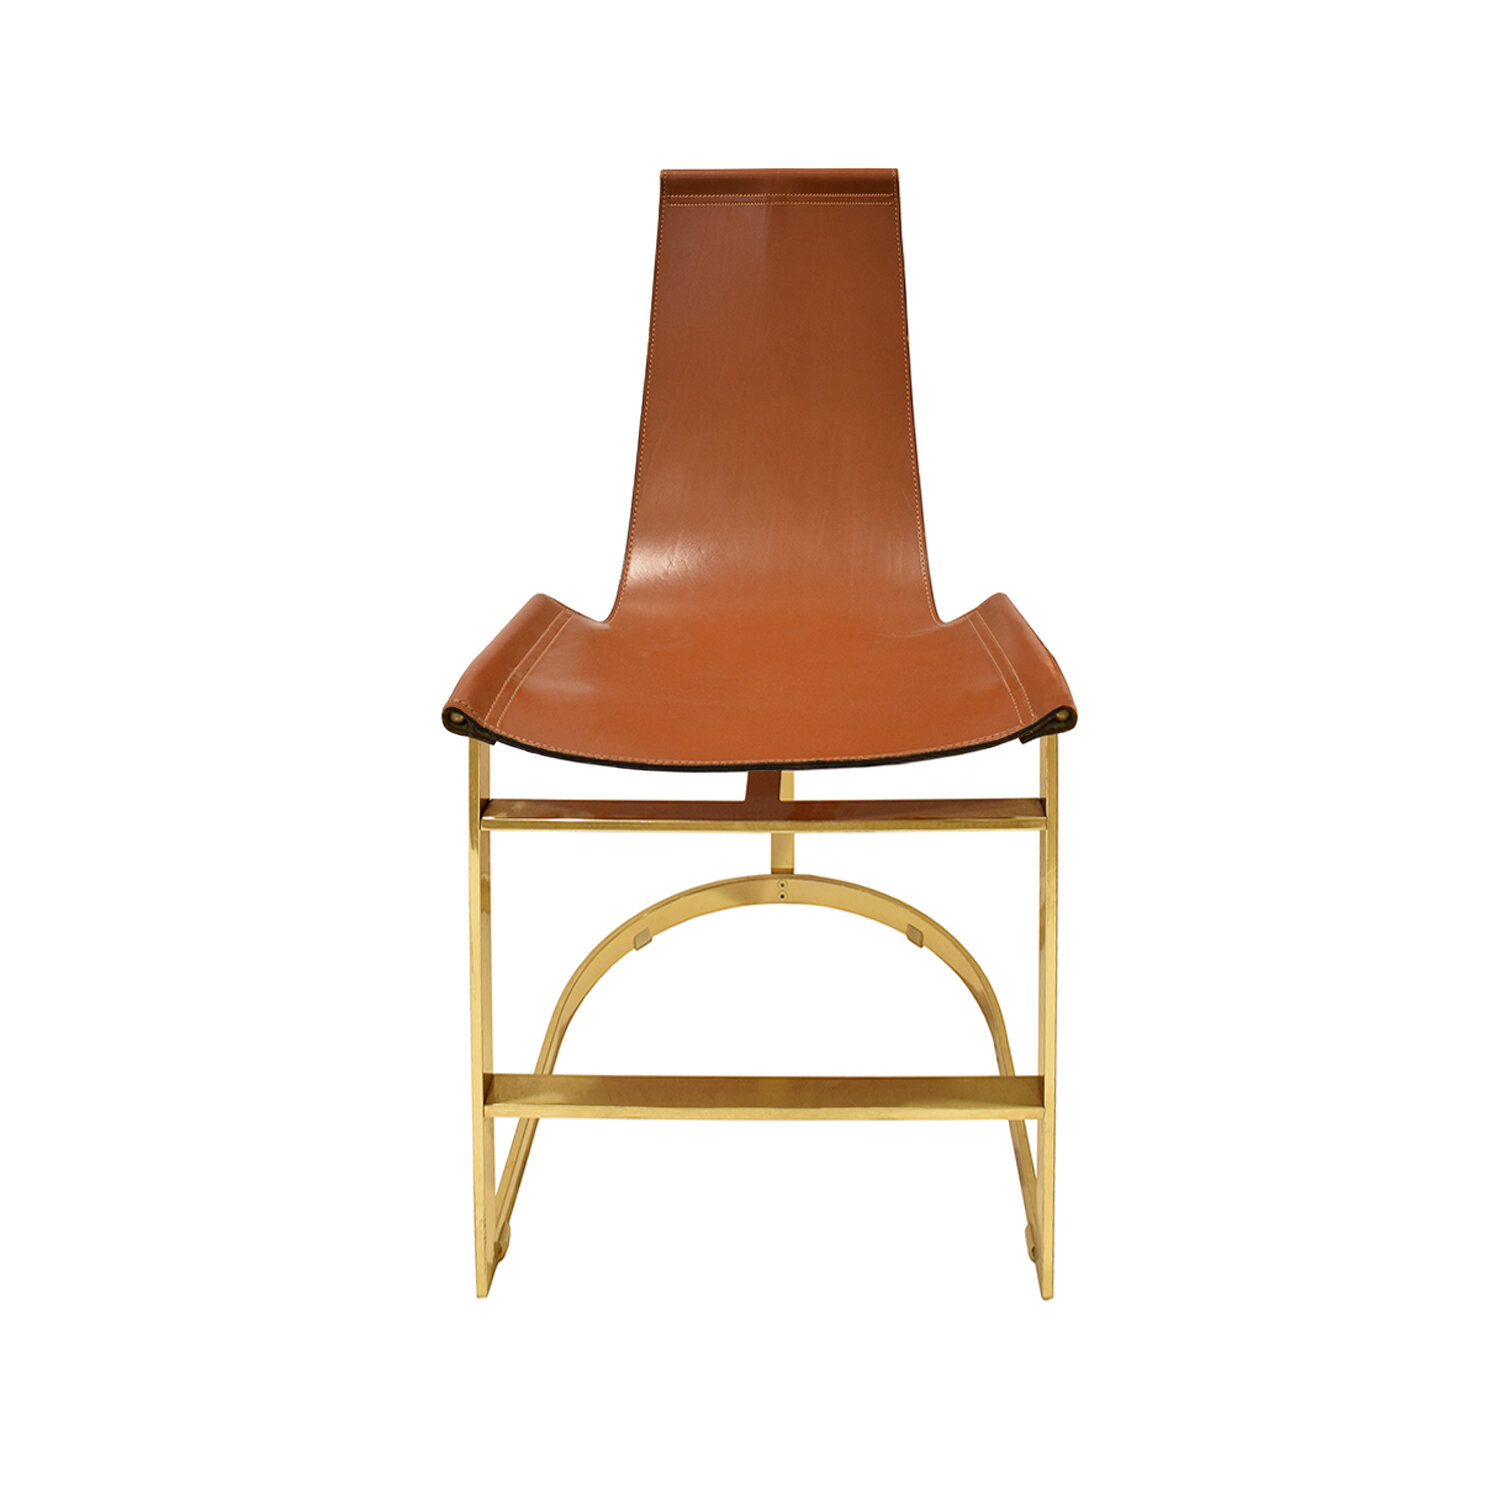 70s 75 brass with leather sling dinningchairs197 sngl frnt.jpg